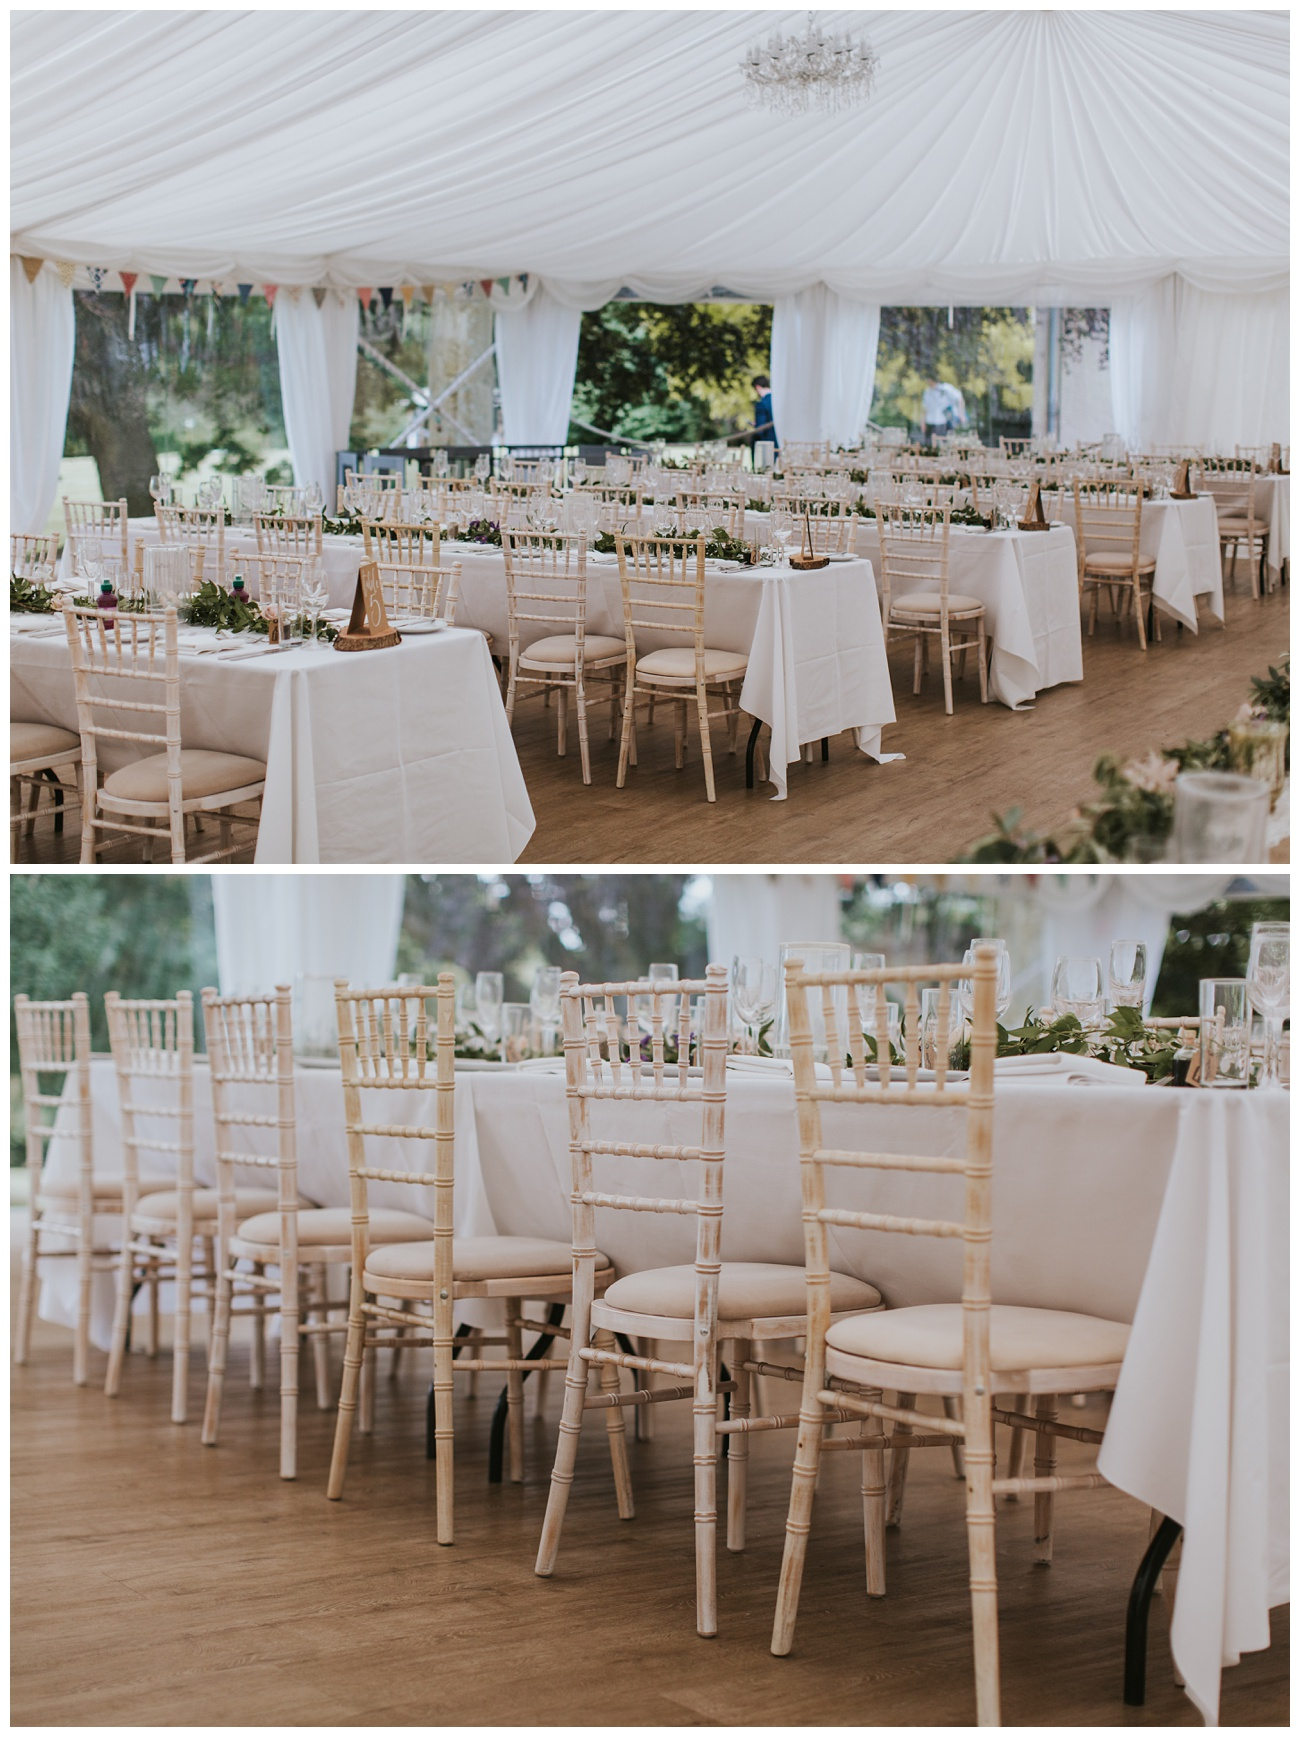 The tables and chairs fully decorated in the marquee at That Amazing Place